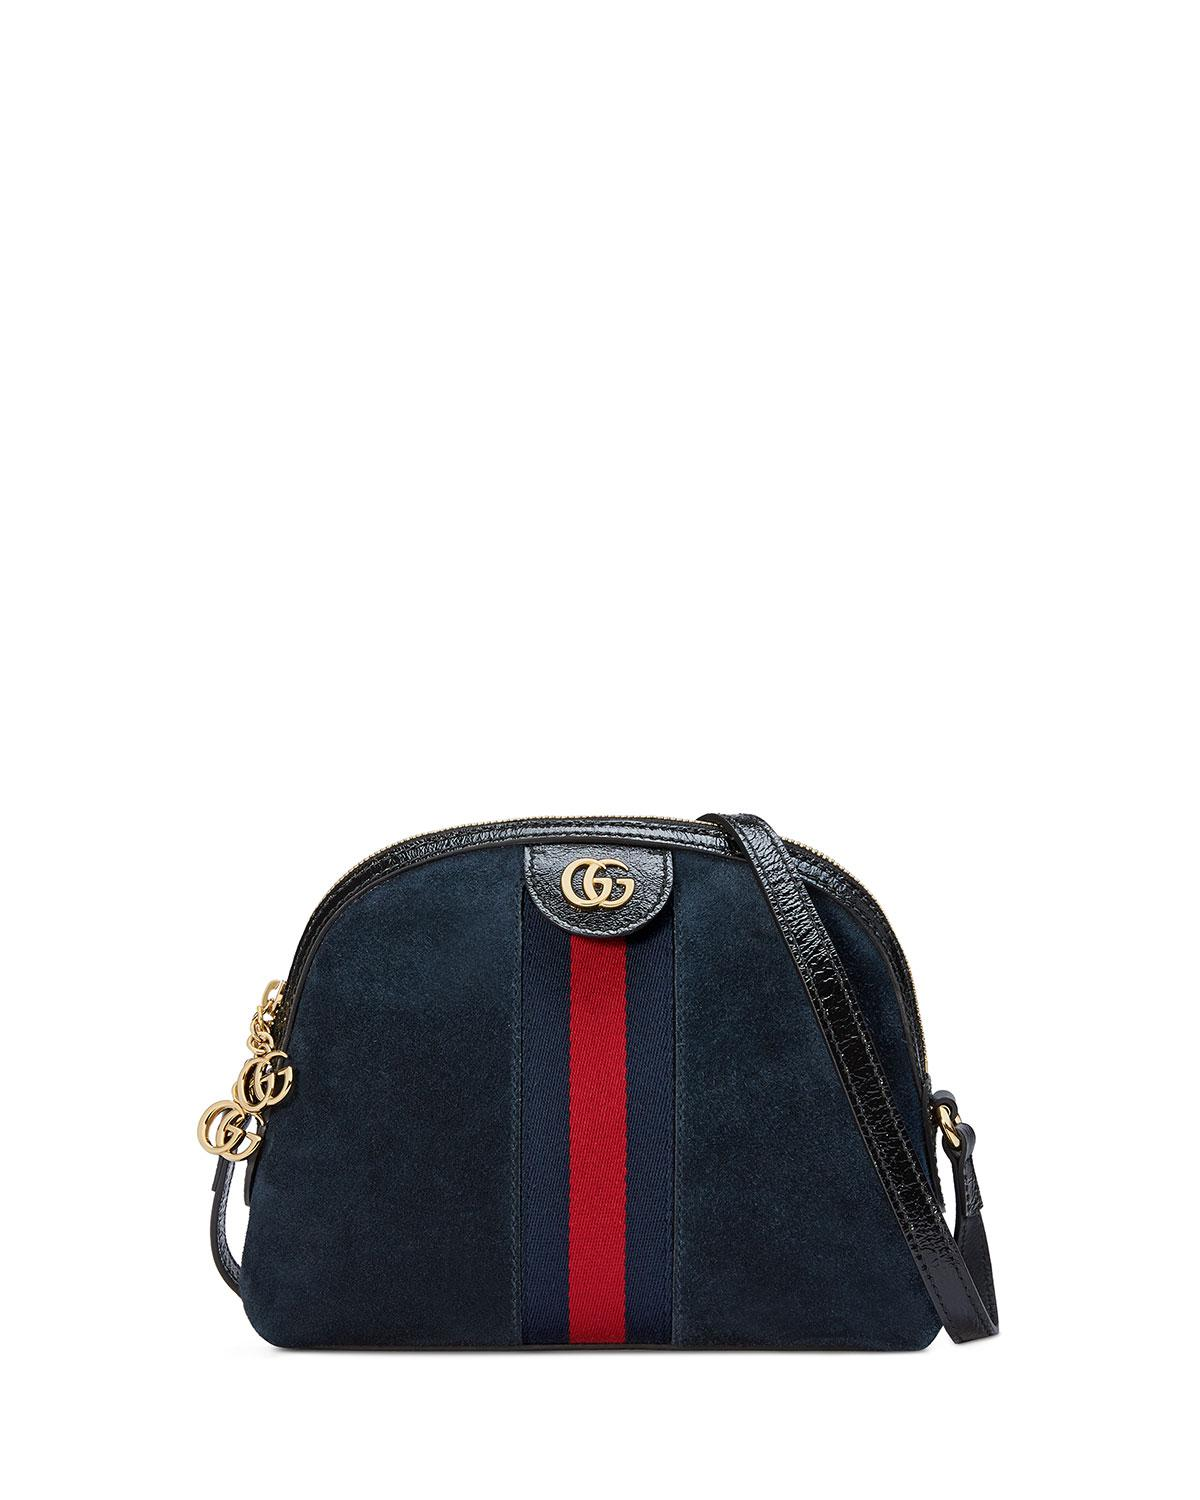 a04ef07f9d0a Gucci Linea Dragoni Suede Small Chain Shoulder Bag in Black - Lyst